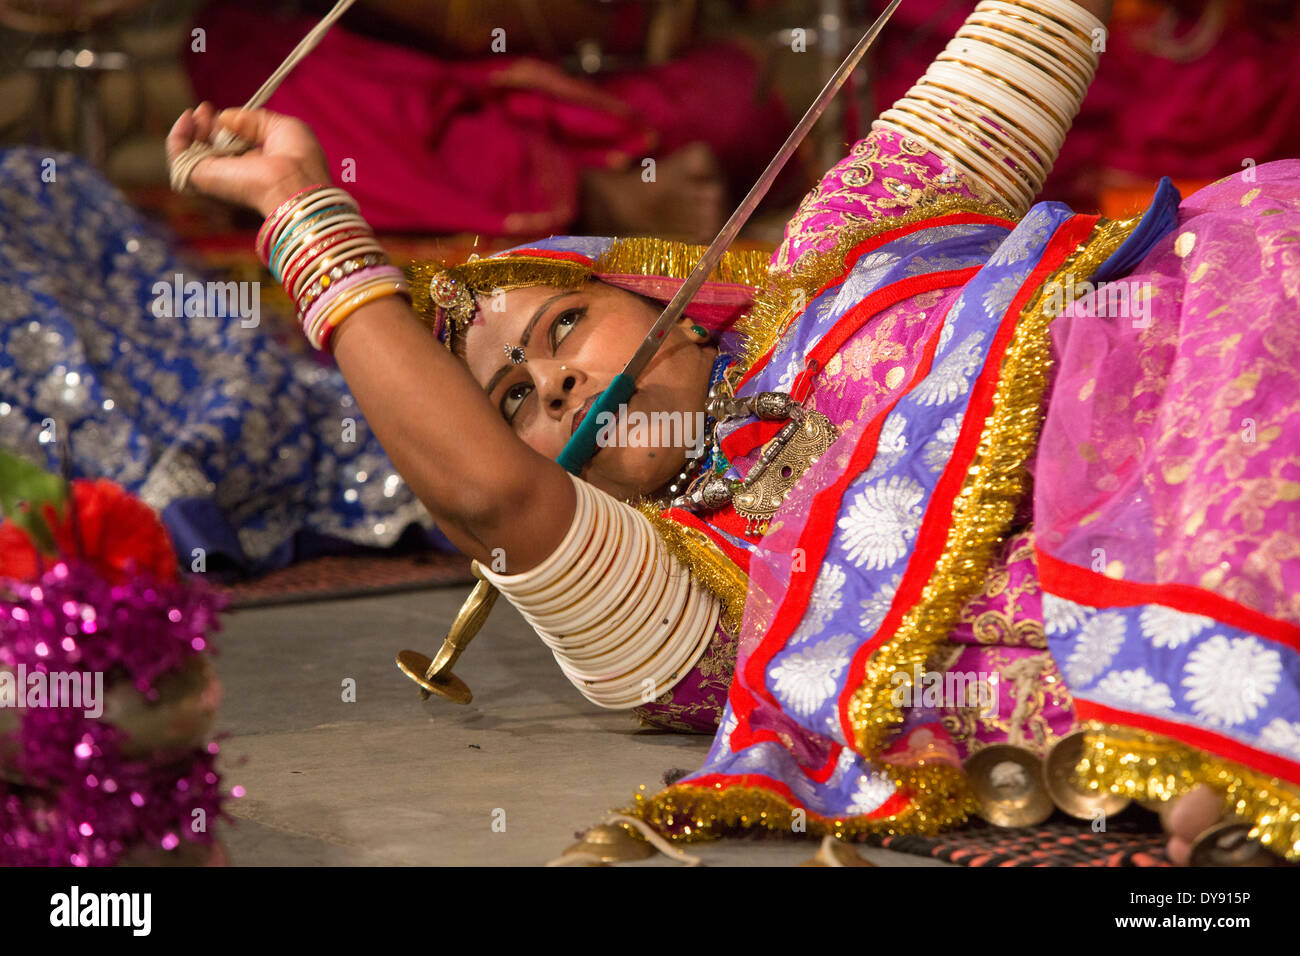 Dance performance show museum Bagore Ki Haveli Udaipur Rajasthan Asia India tradition folklore traditional national Stock Photo